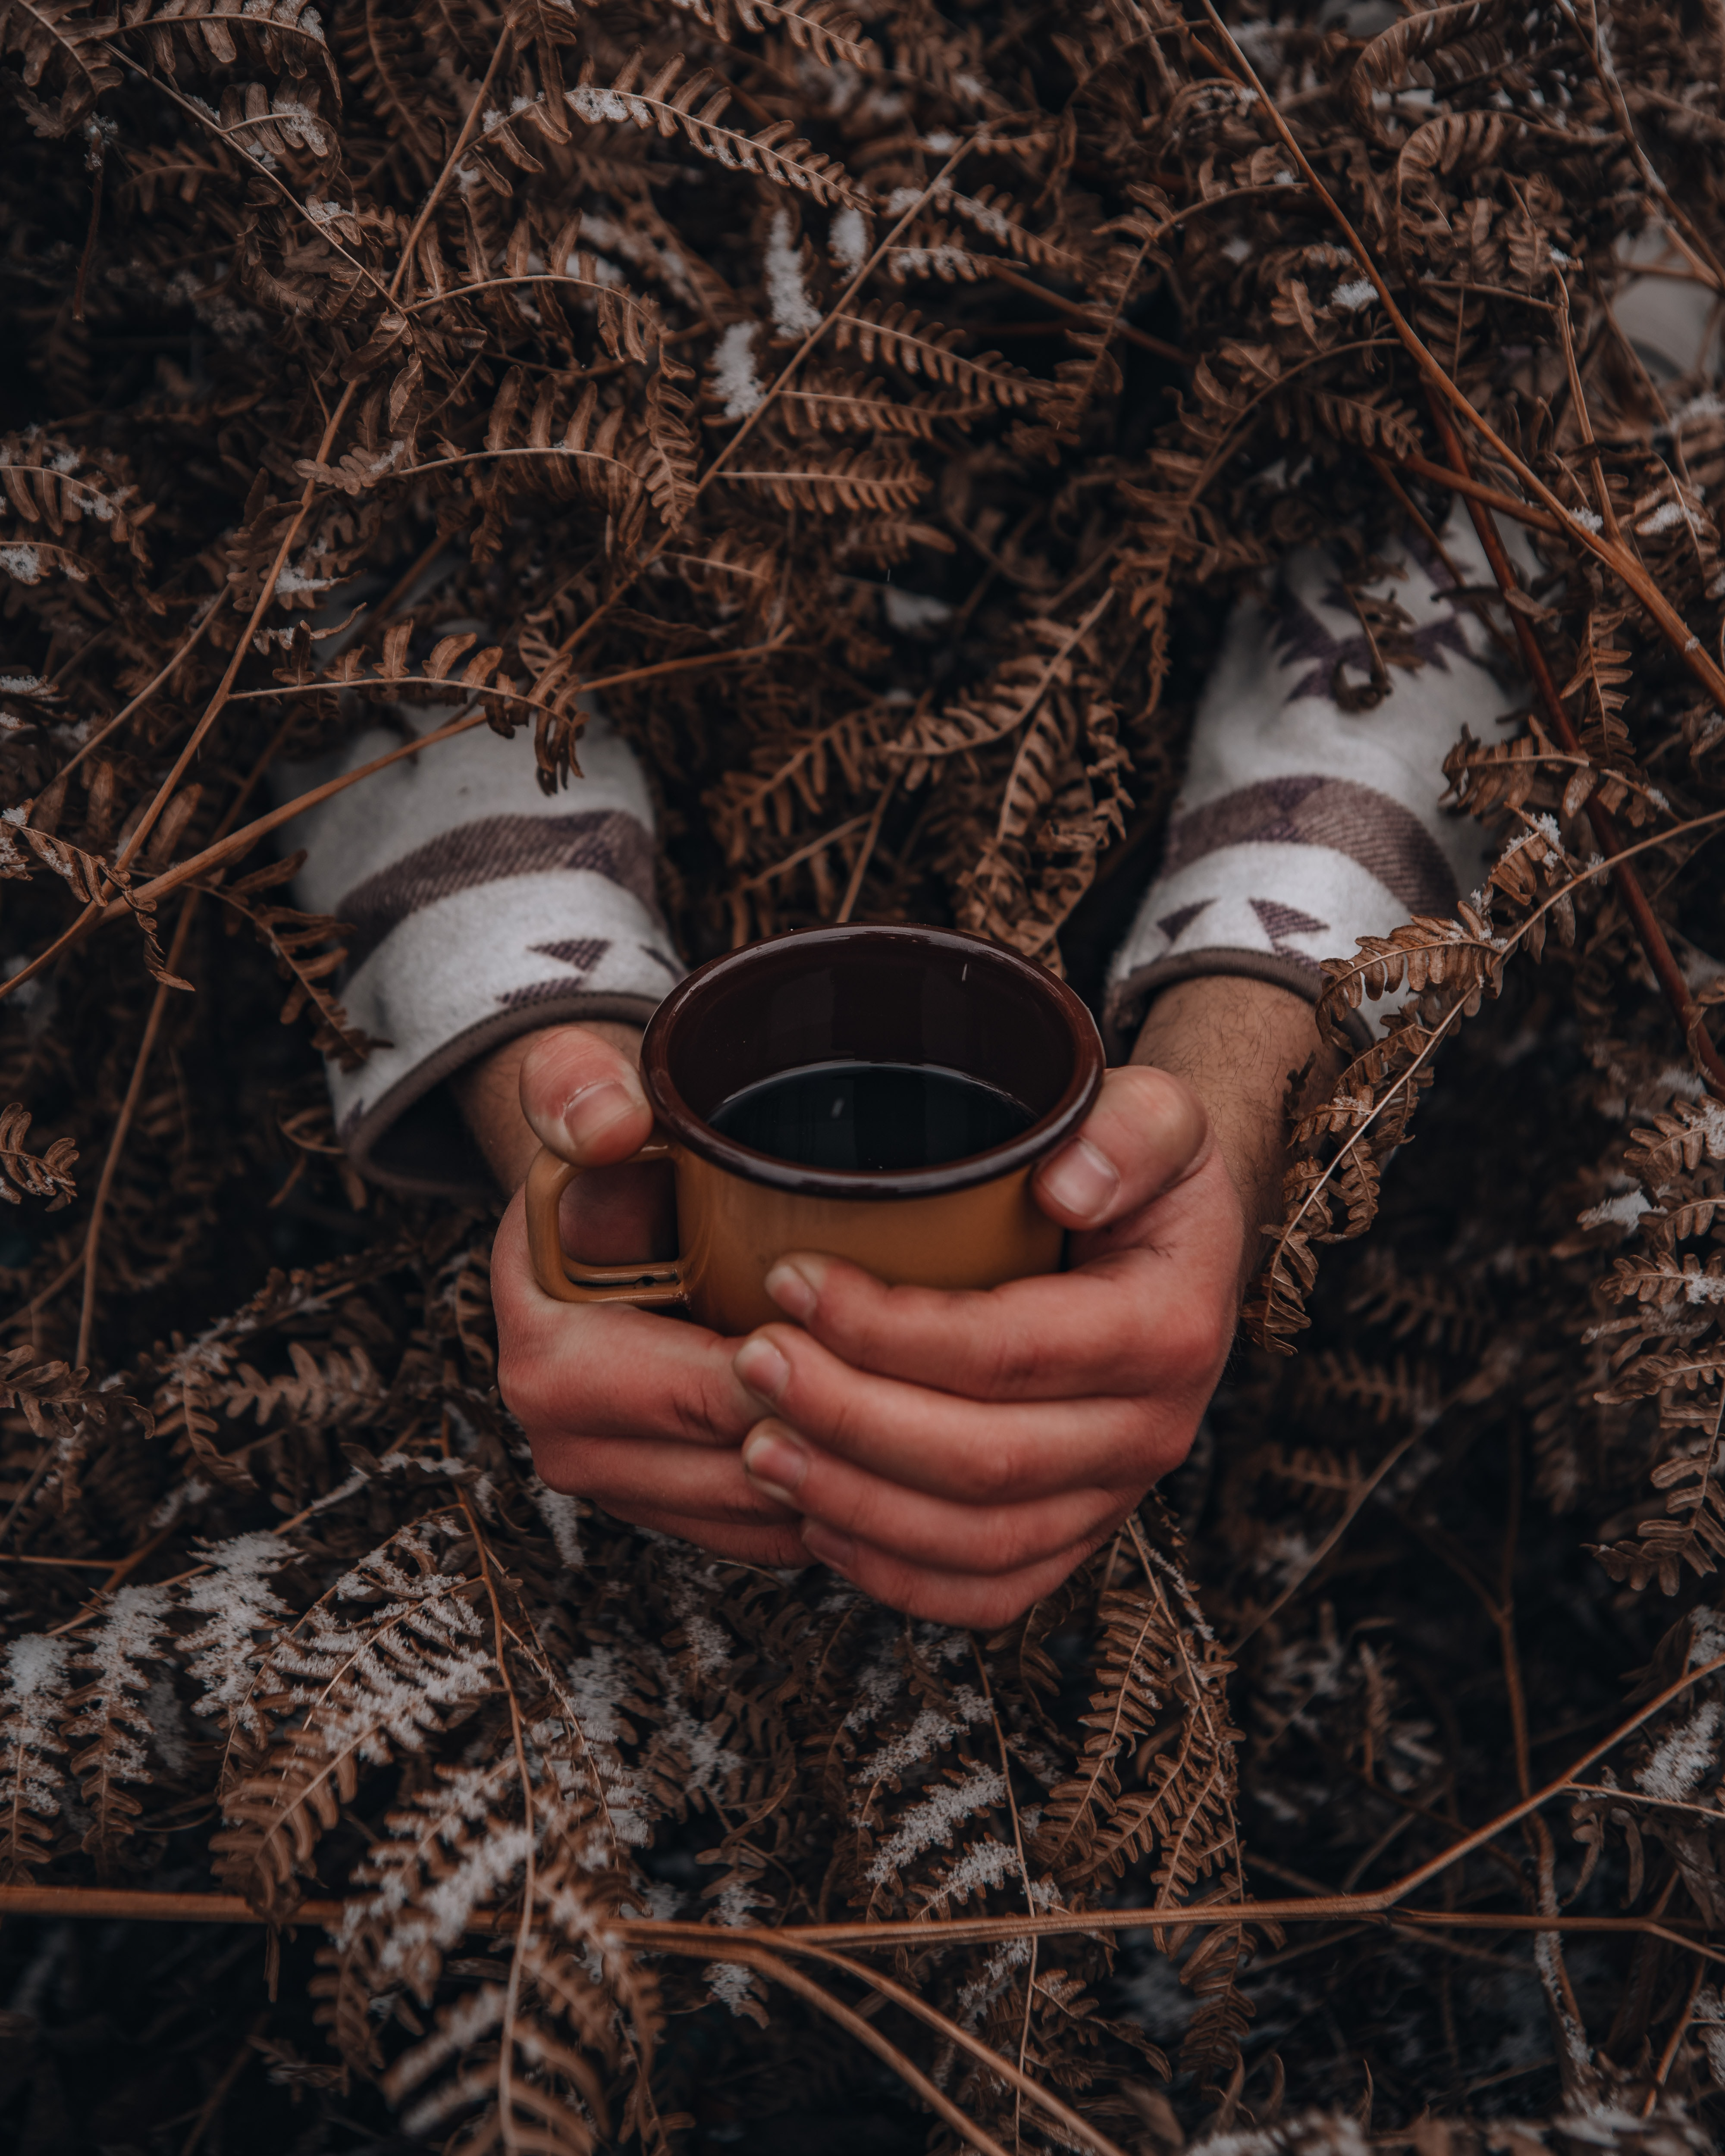 154646 download wallpaper Miscellanea, Miscellaneous, Cup, Mug, Hands, Fern, Snow screensavers and pictures for free